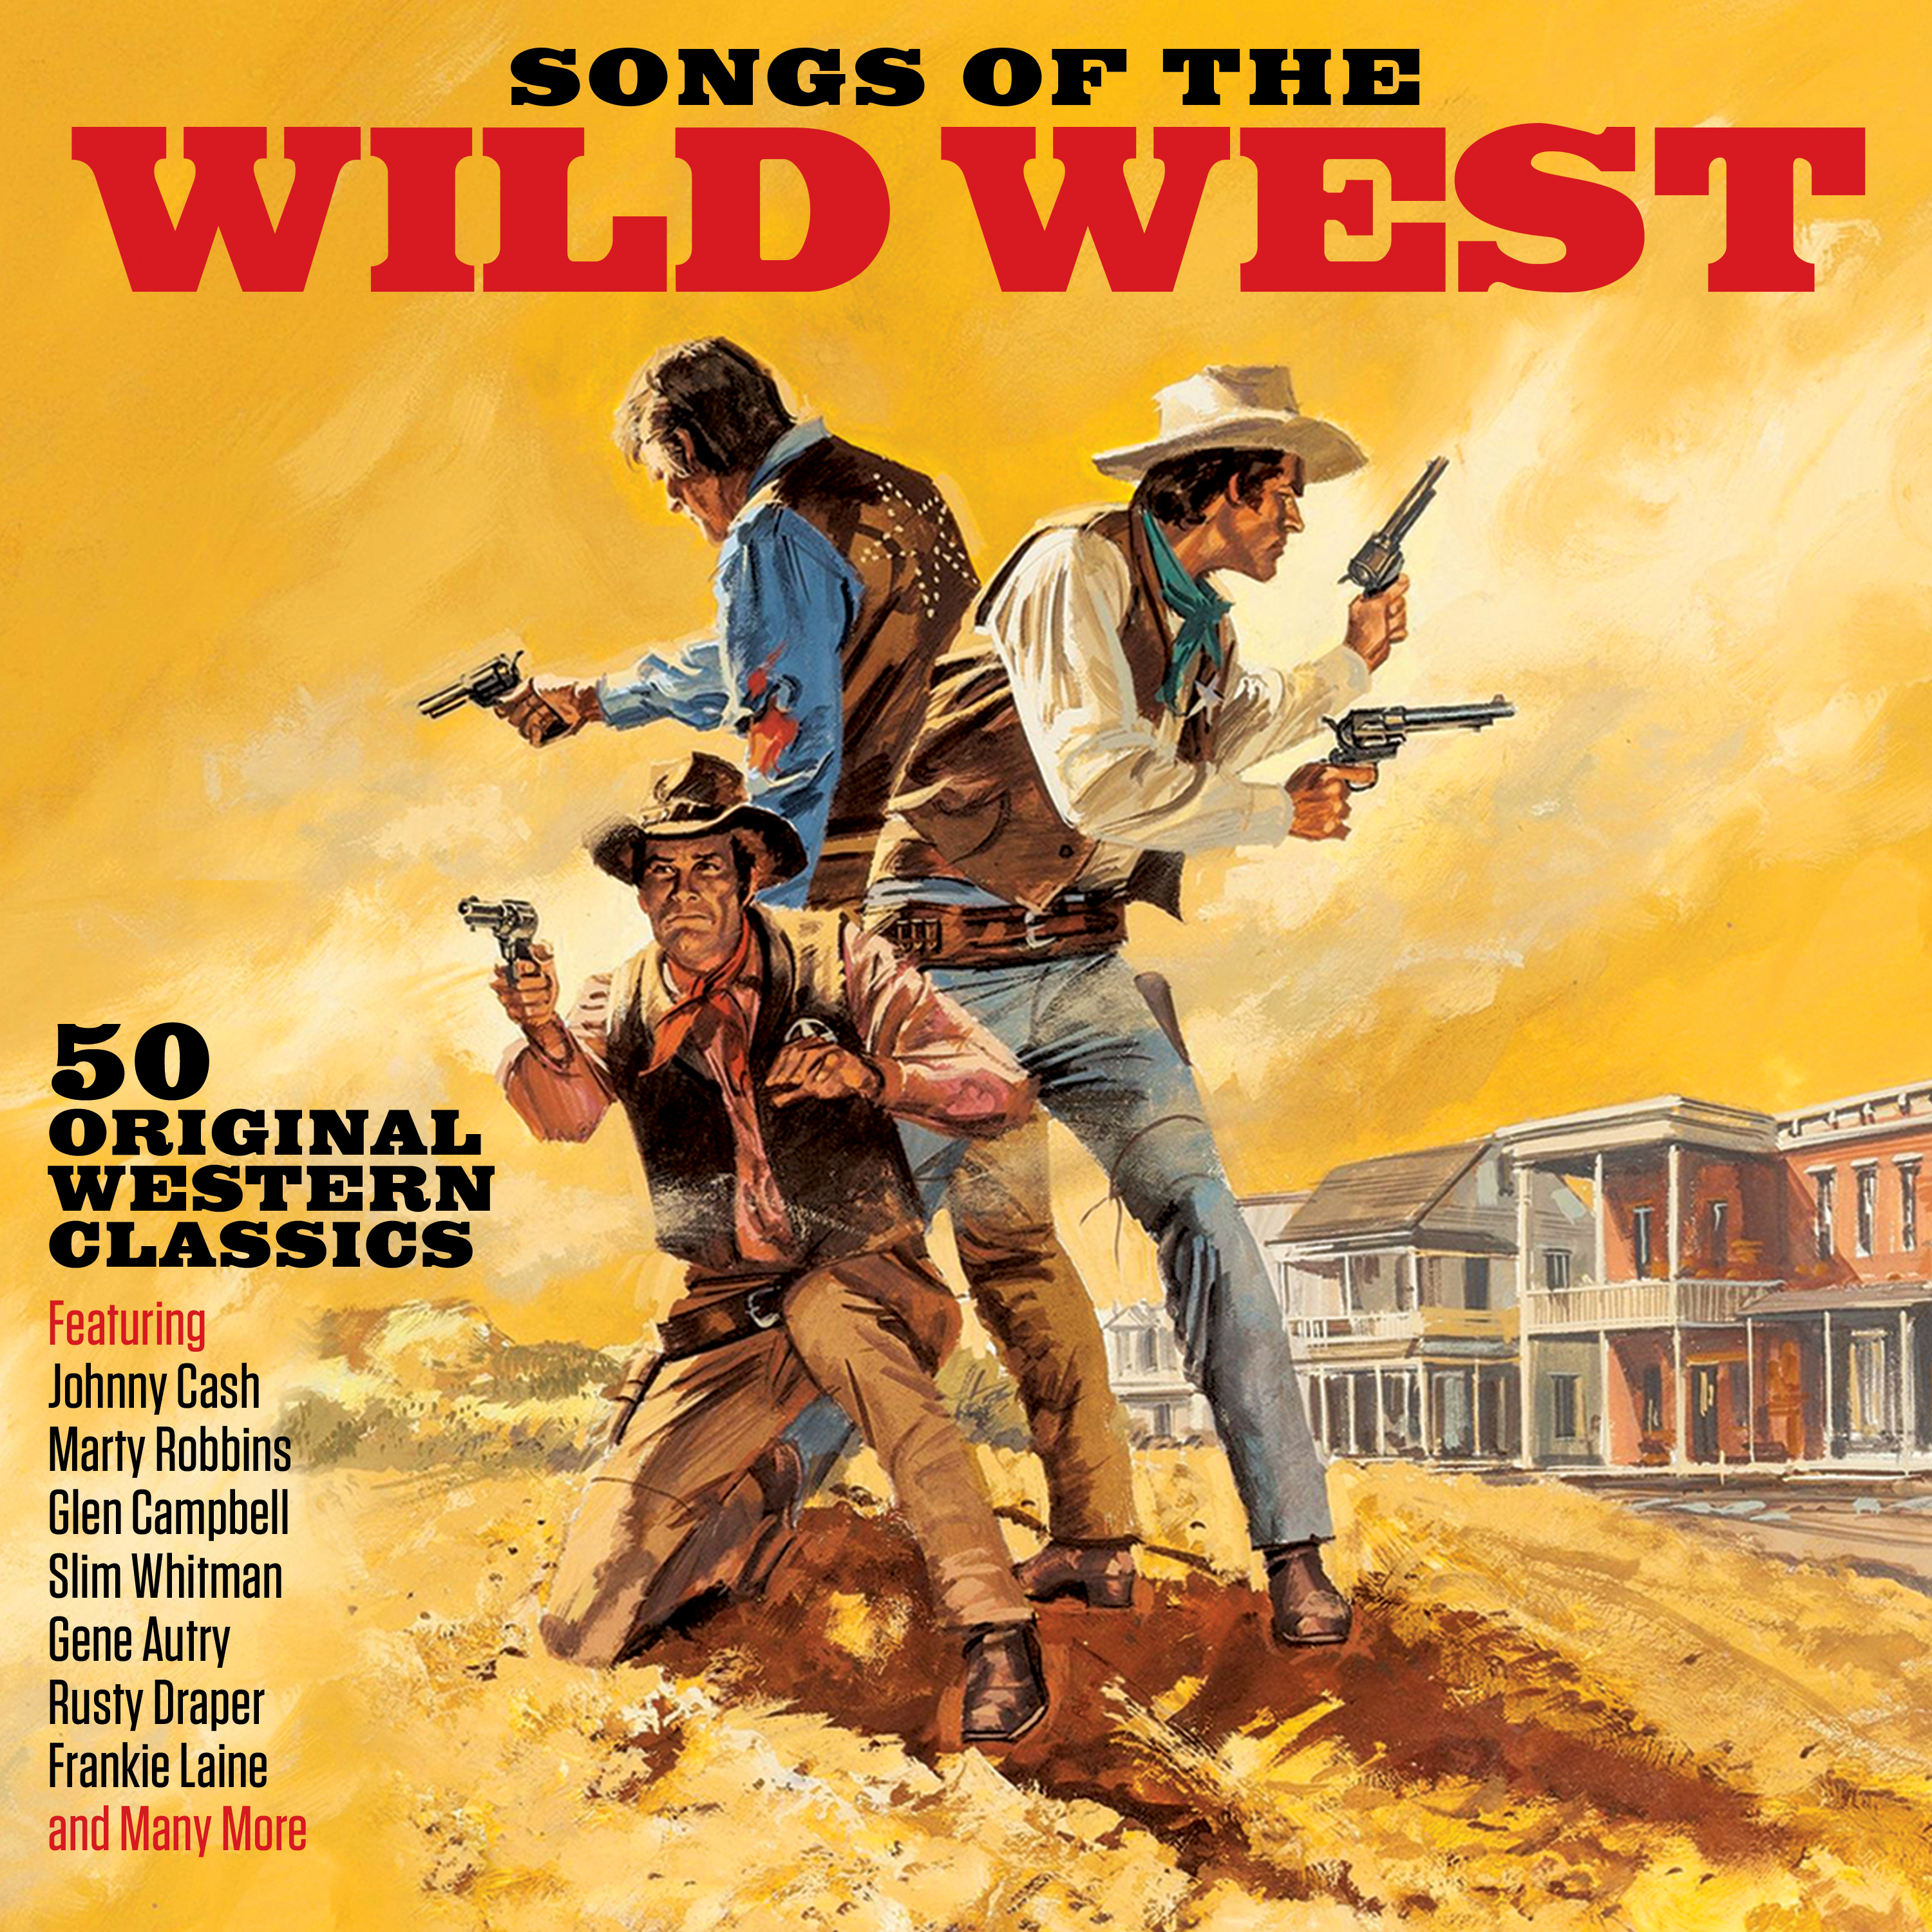 Songs Of The Wild West 50 Original Western Classics